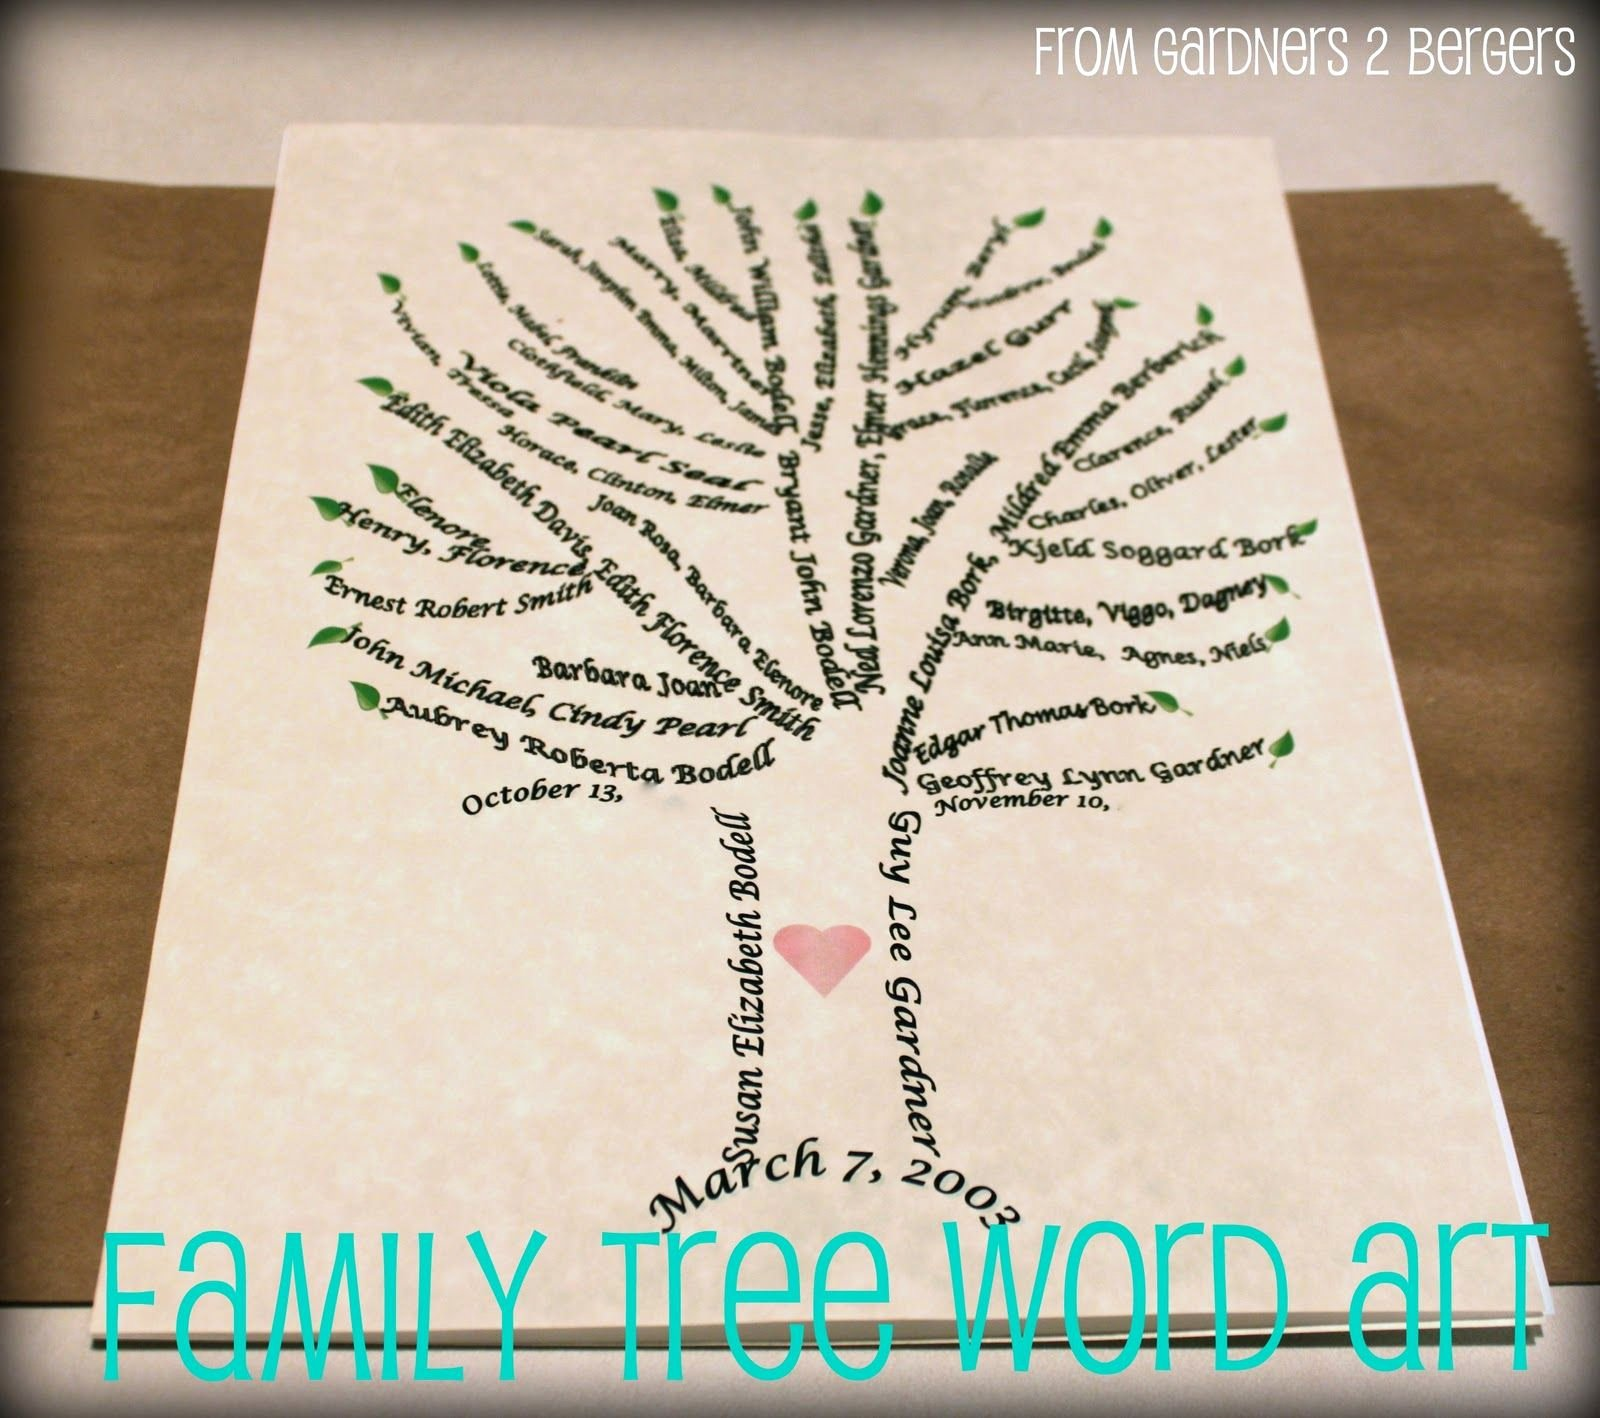 Family Tree Word Art New From Gardners 2 Bergers Family Tree Word Art [tutorial